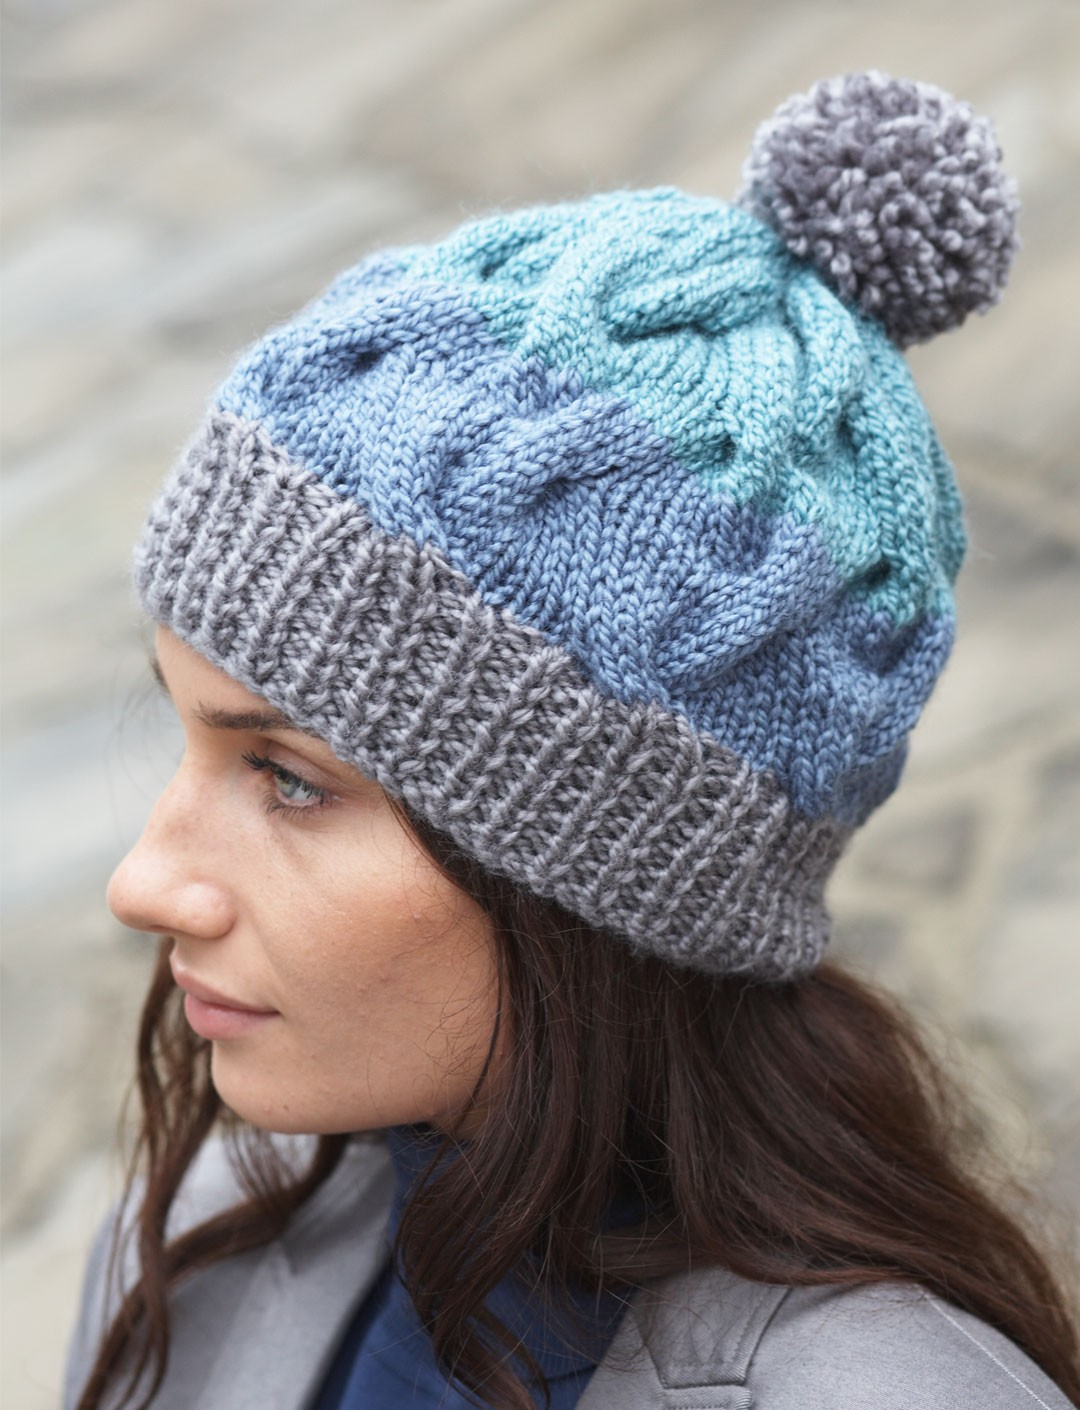 Knitting Patterns For Hats Using Circular Needles : Patons Striped Cable Hat, Knit Pattern Yarnspirations